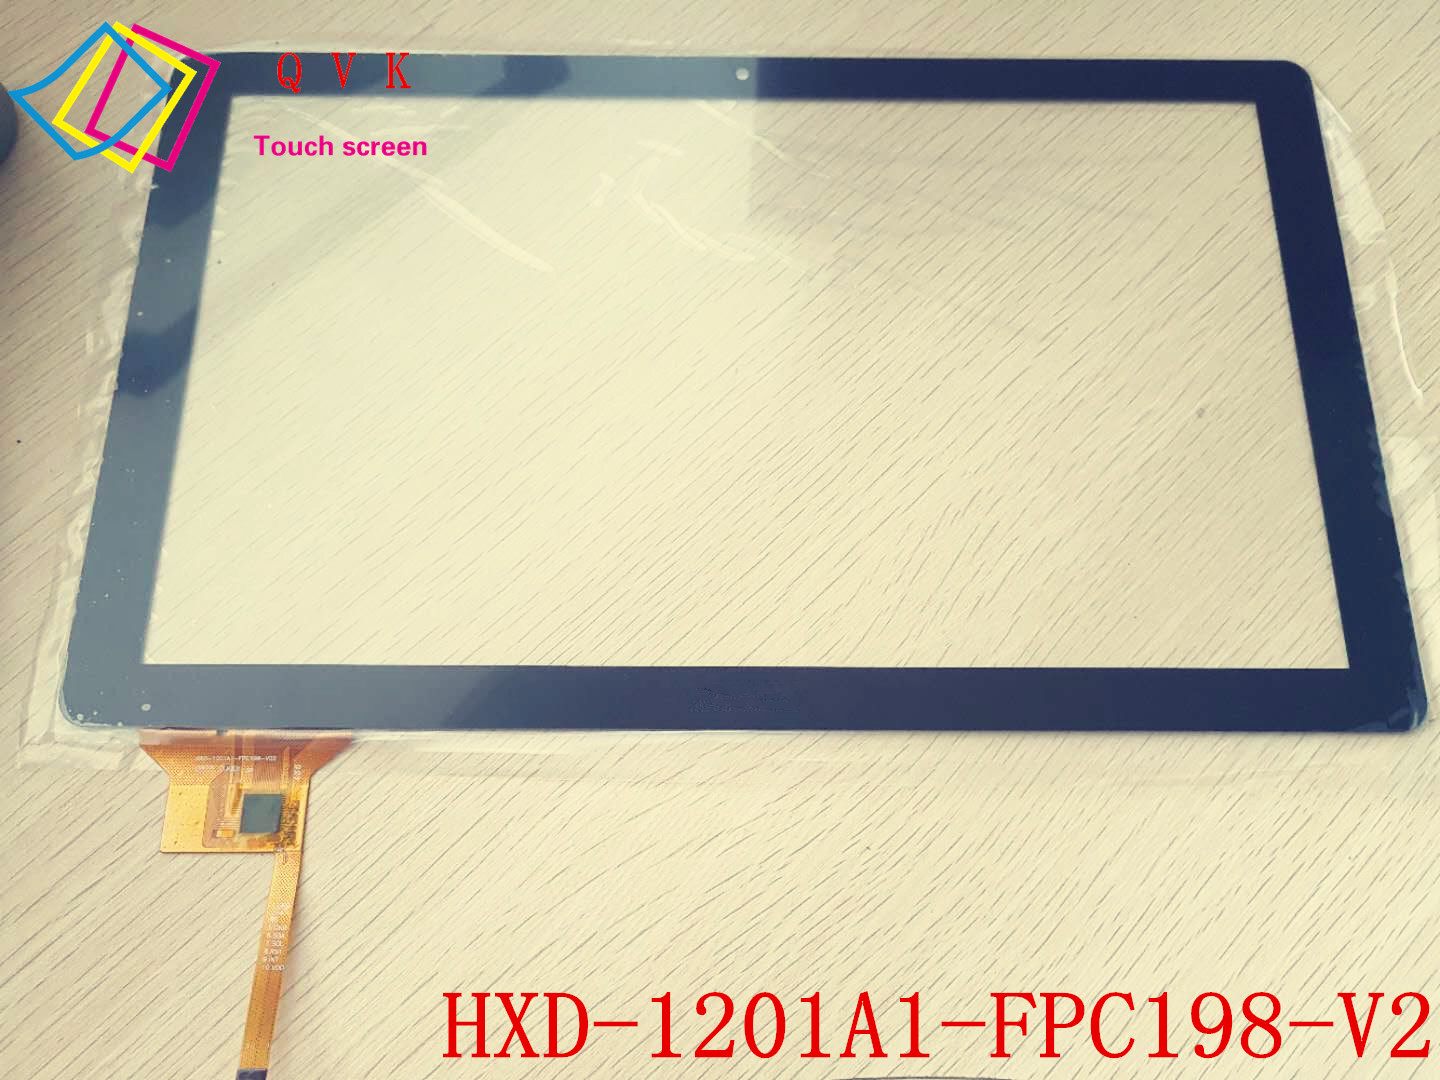 Black 12.1 Inch touch screen For HXD-1201A1-FPC198-V2 Capacitive touch screen Tablet PC replacement repair a 9 inch touch screen czy62696b fpc dh 0901a1 fpc03 2 dh 0902a1 fpc03 02 vtc5090a05 gt90bh8016 hxs ydt1143 a1 mf 289 090f